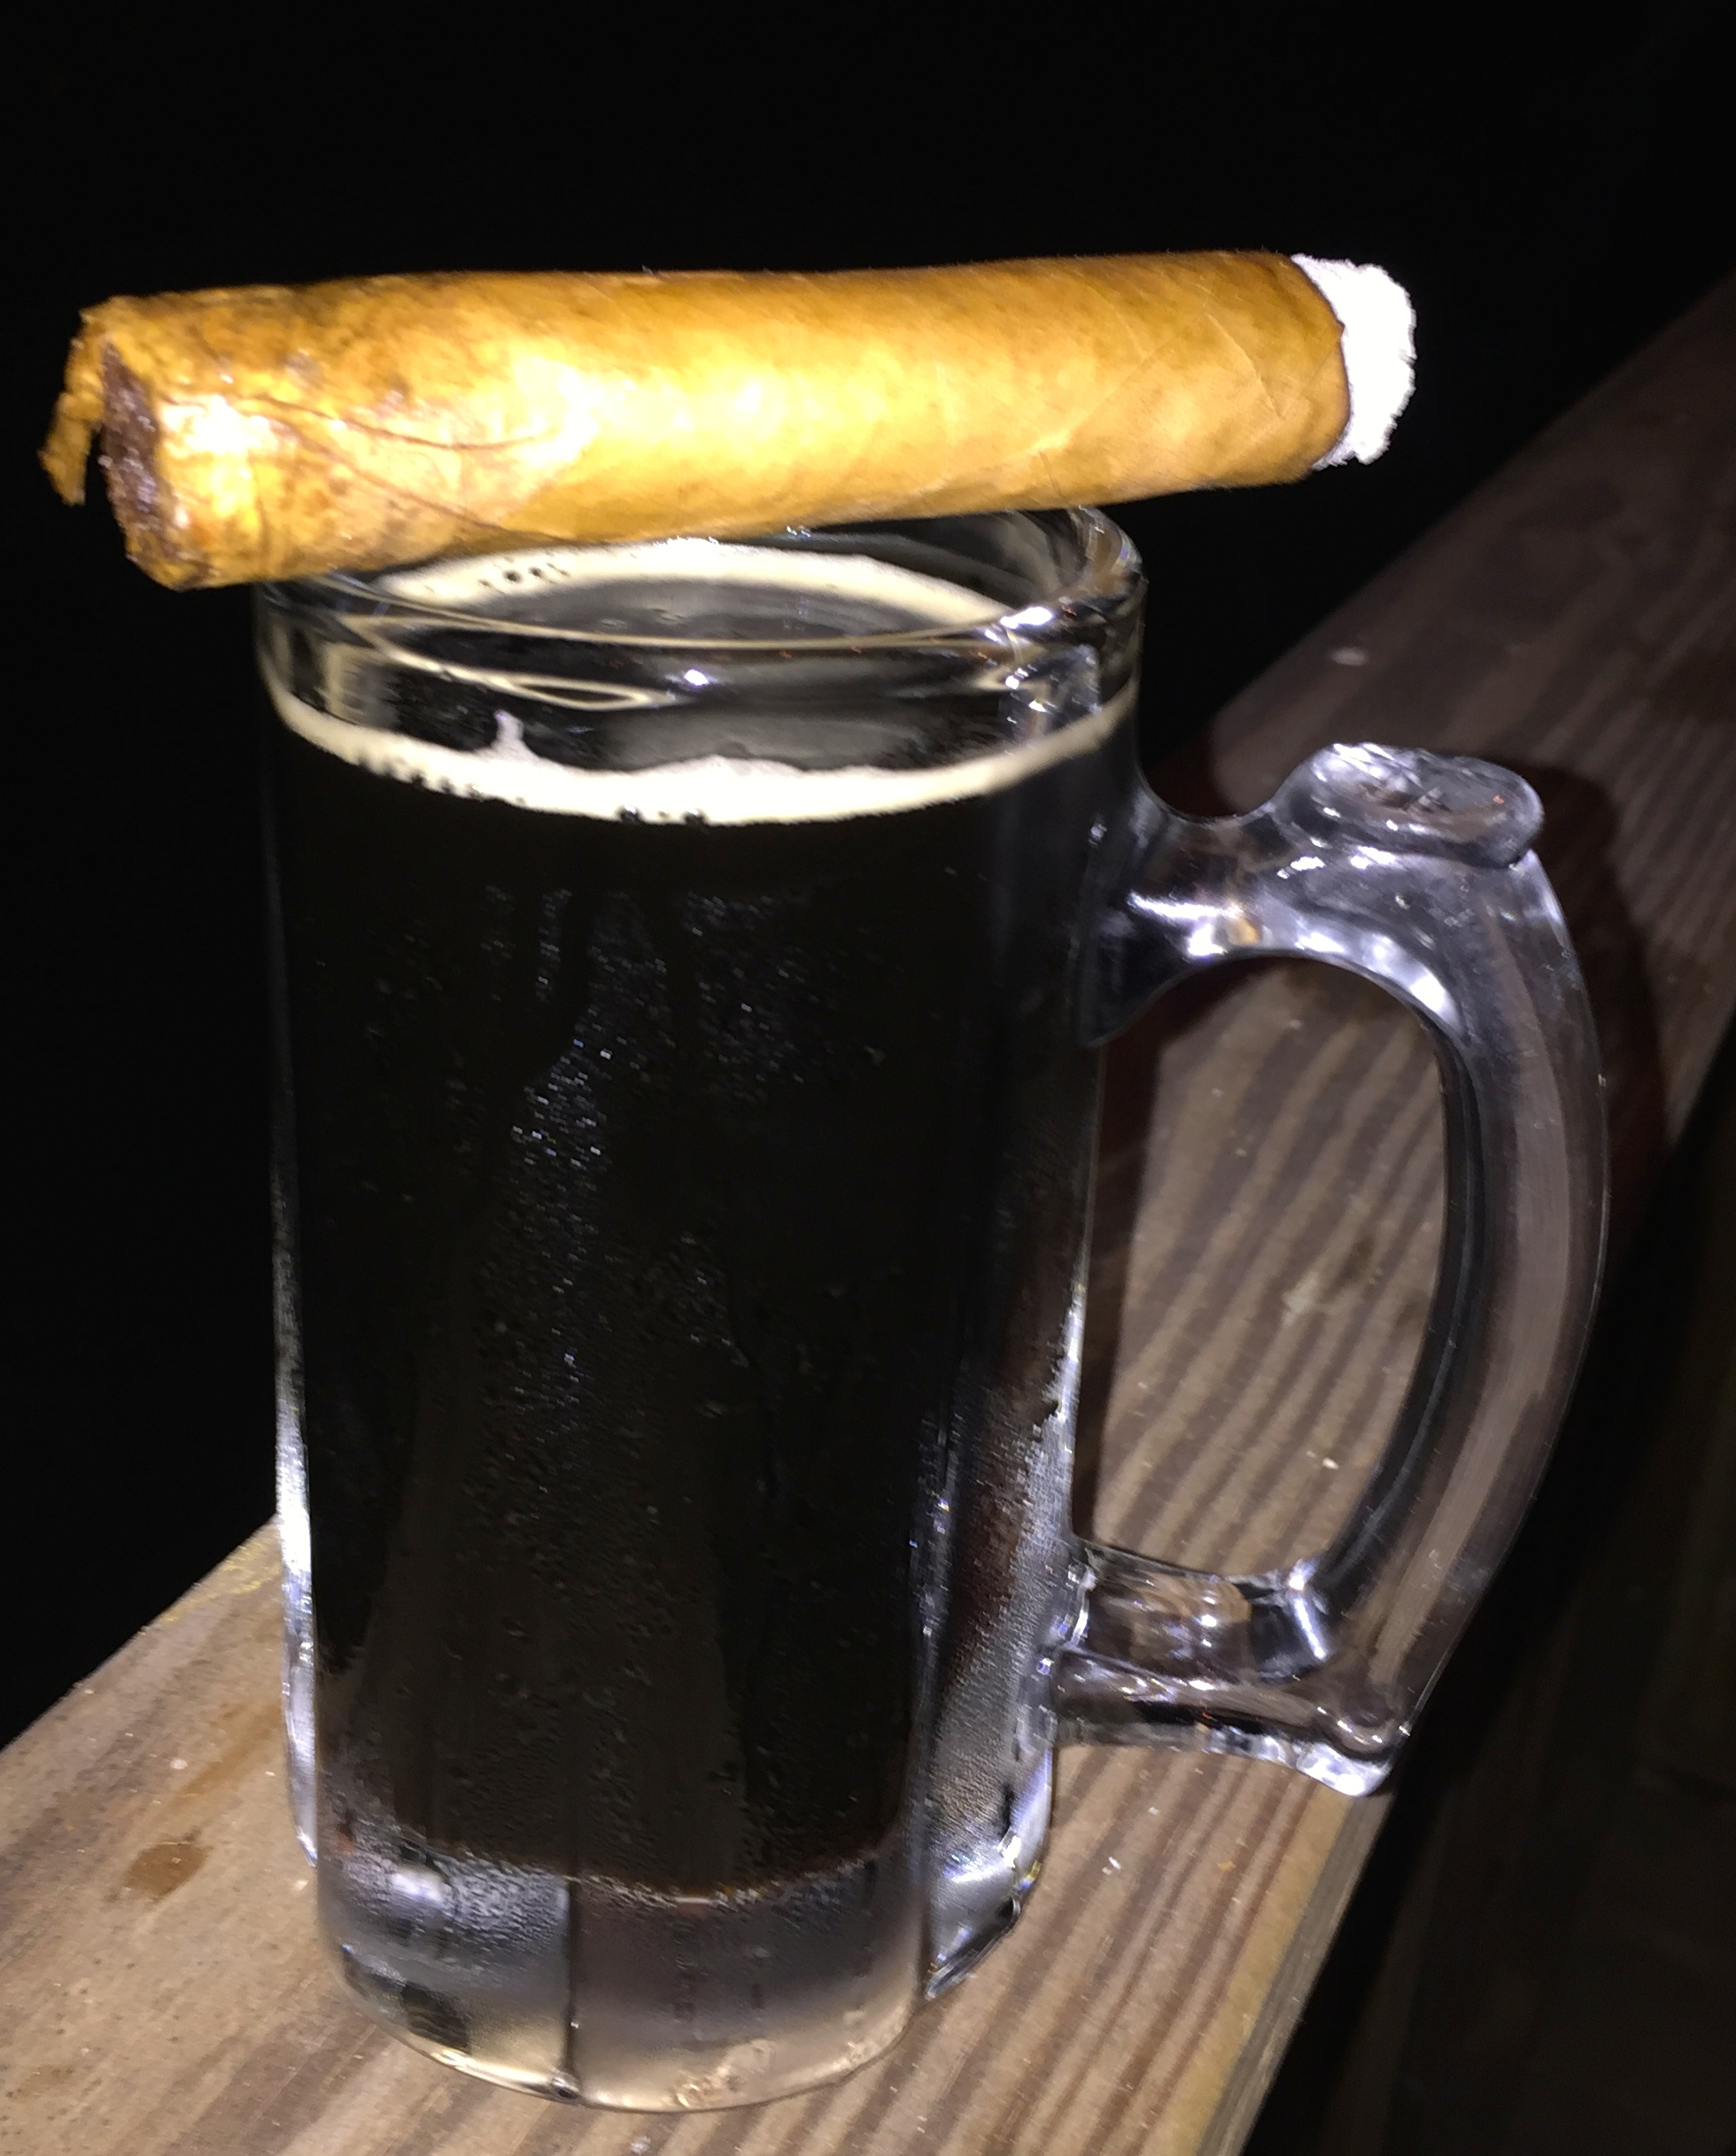 rabbit-after-dinner-porter-and-cigar